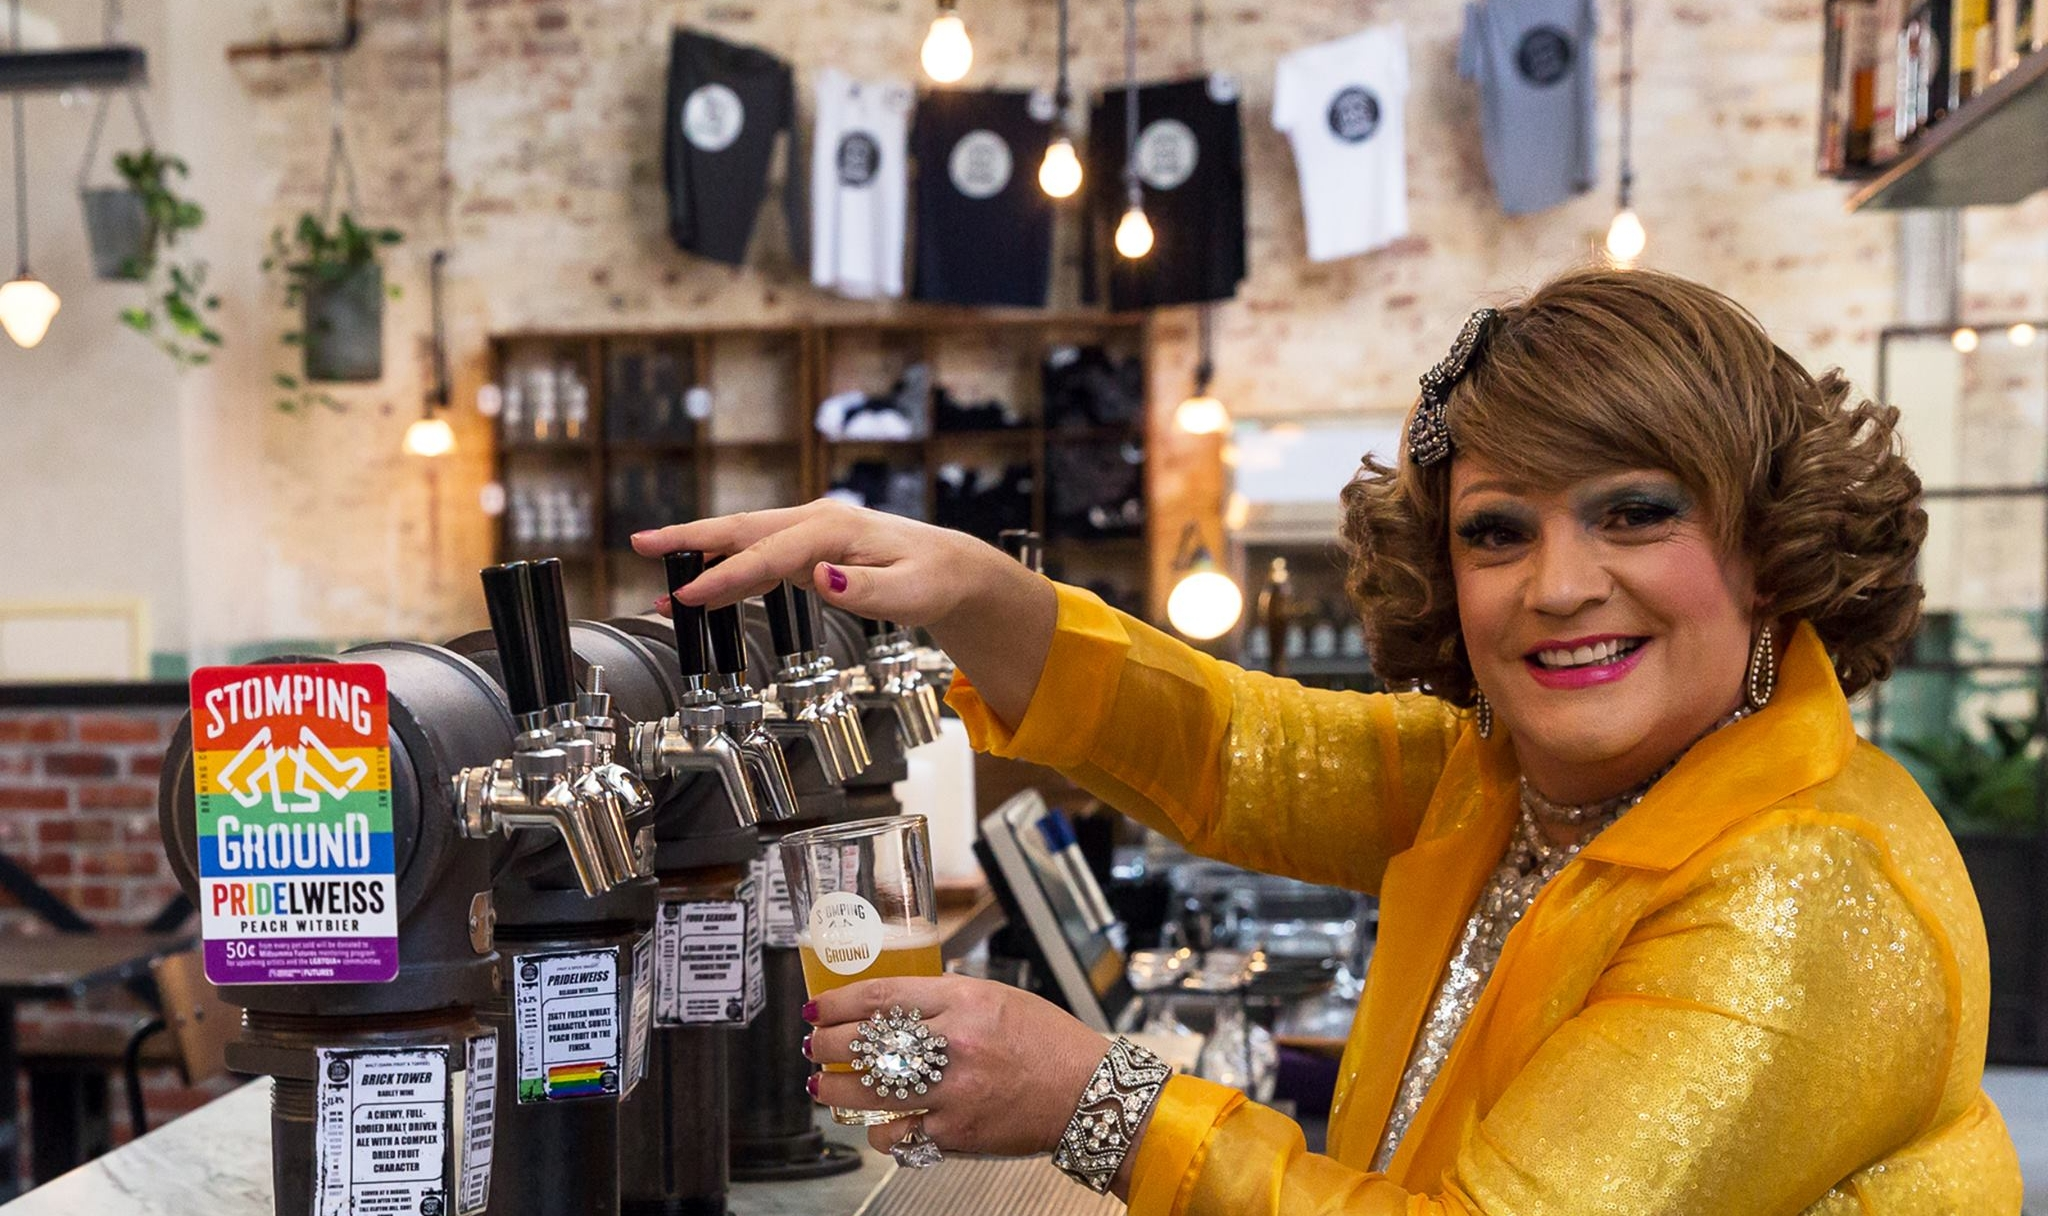 Dolly Diamond pouring PRIDElweiss at Stomping Ground.  Facebook:  @therealdollydiamond   | Instagram:  @therealdollydiamond  | Twitter:  @_DollyDiamond